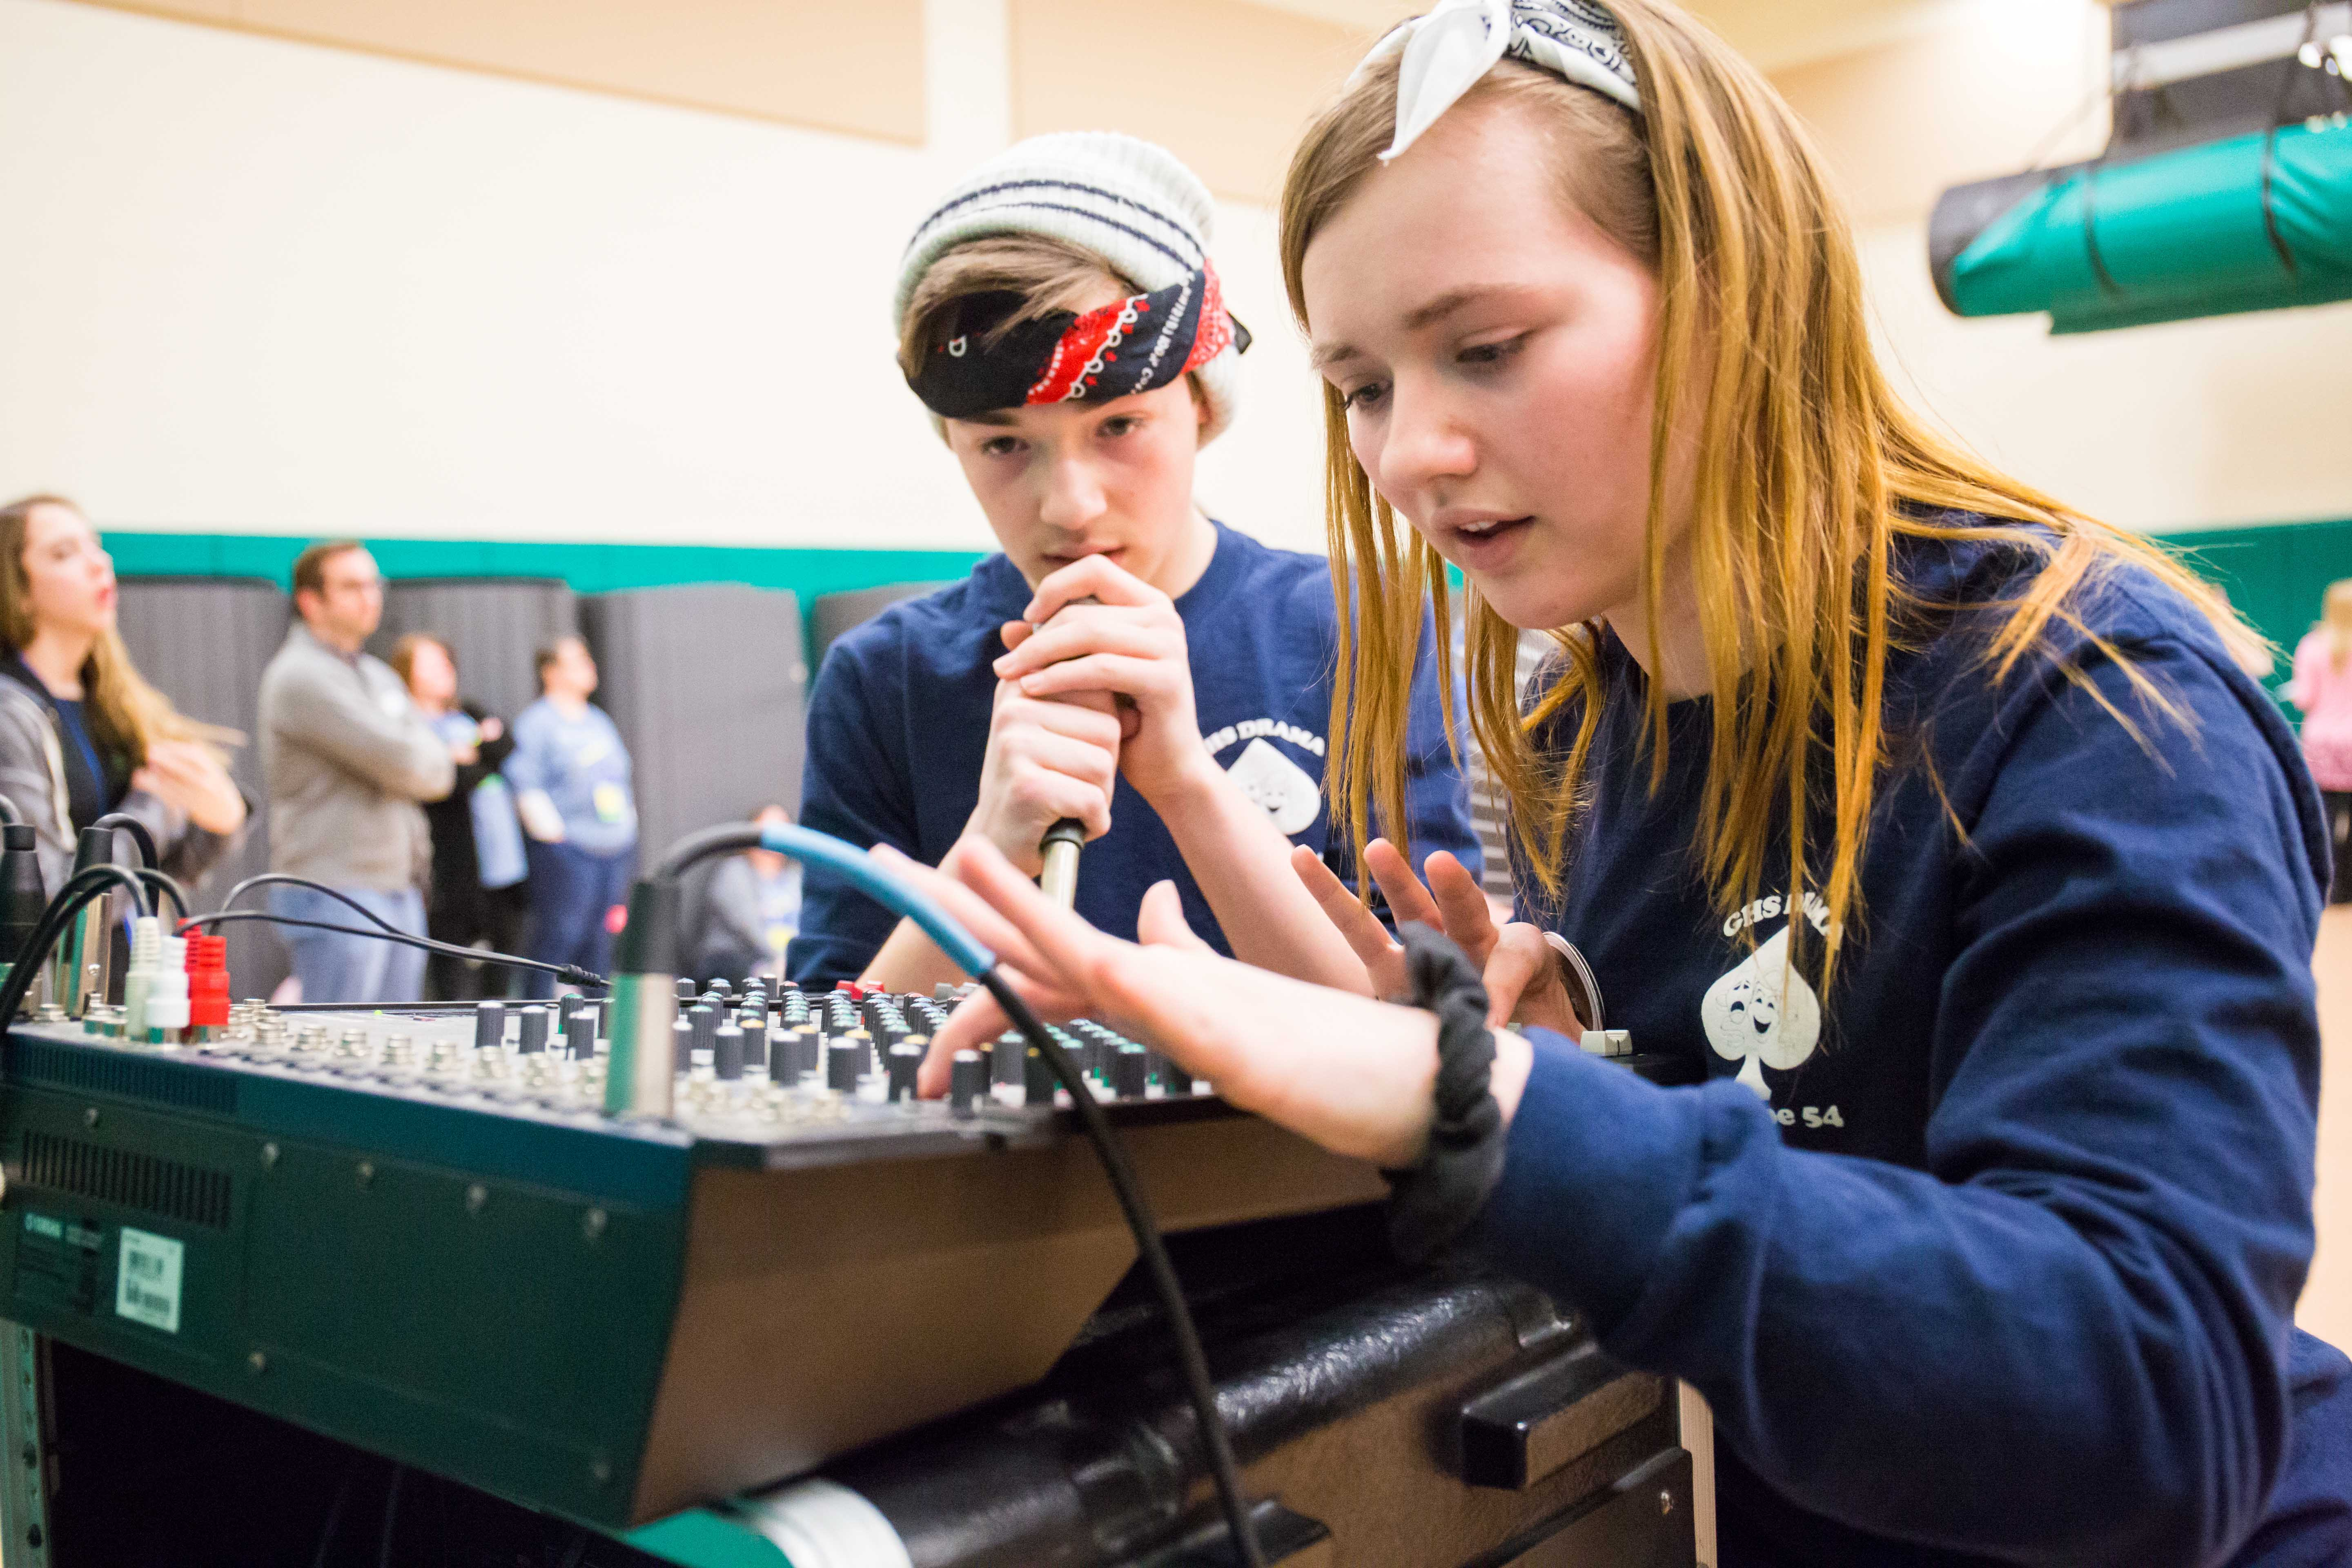 Two students working at a lighting board